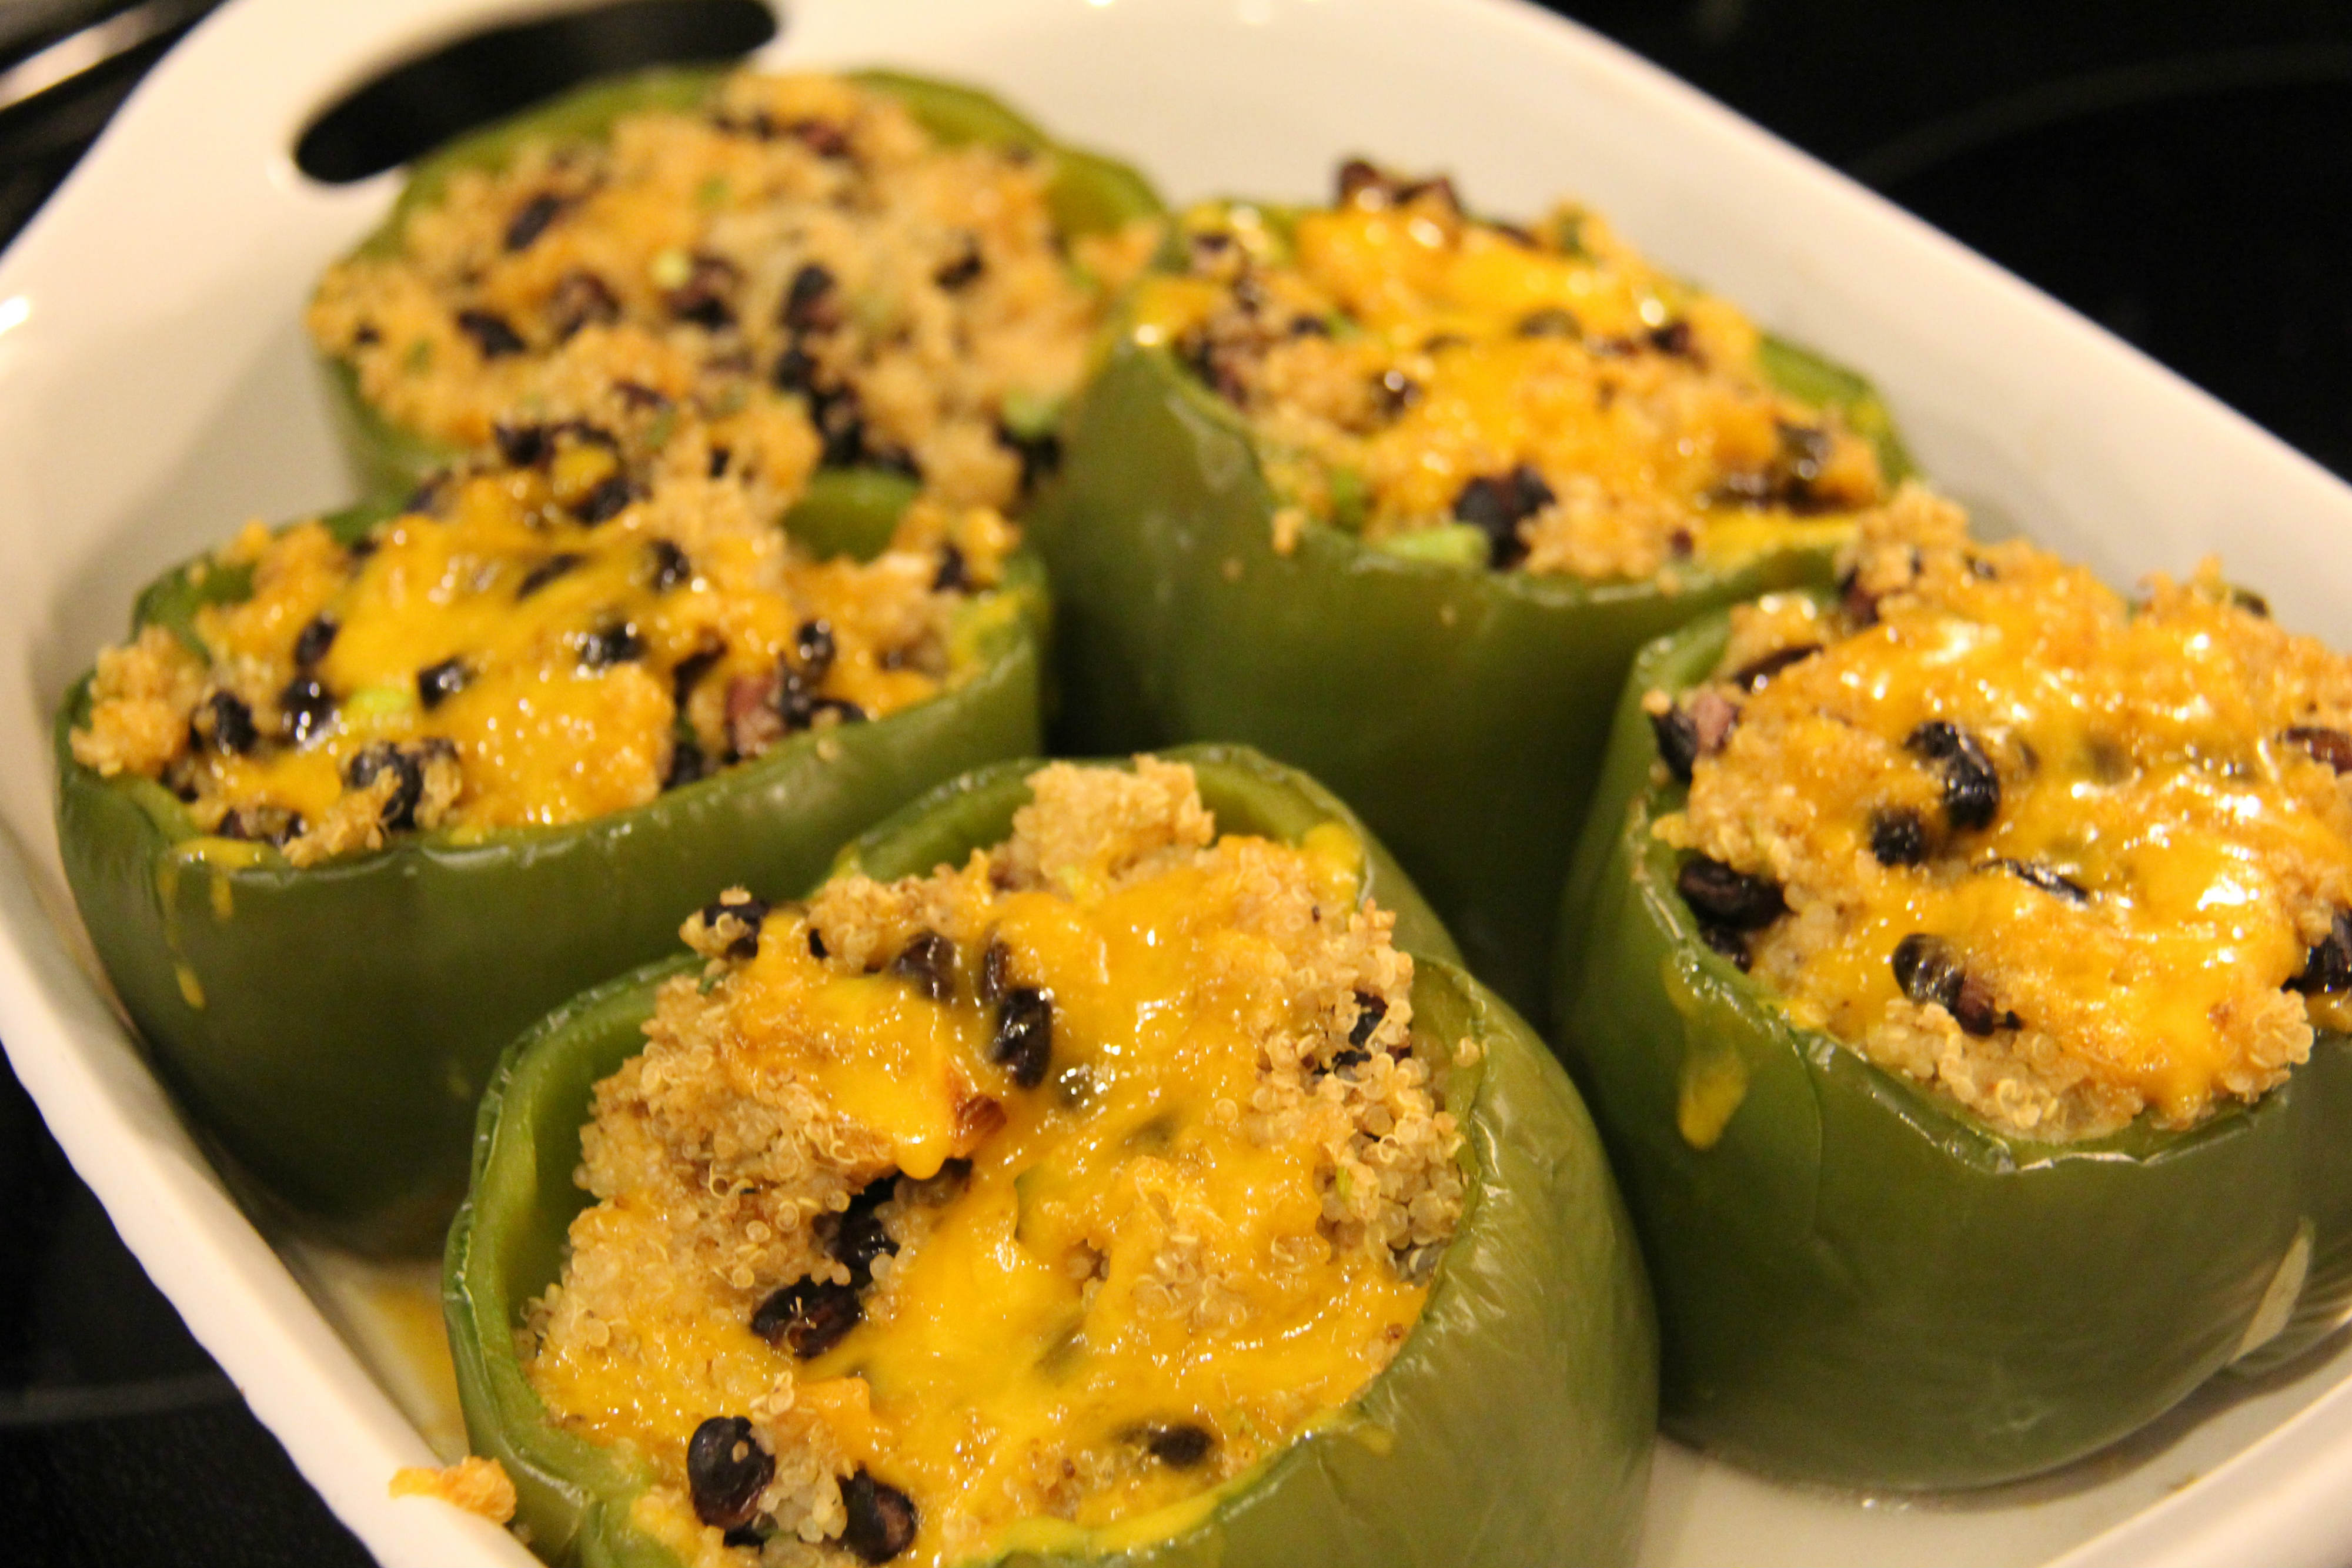 This quinoa recipe, which cooks in around 30 minutes, is healthy yet still has lots of flavor. Perfect for leftovers, these quinoa stuffed green peppers can provide you with a lighter alternative to one of your weekly recipes.